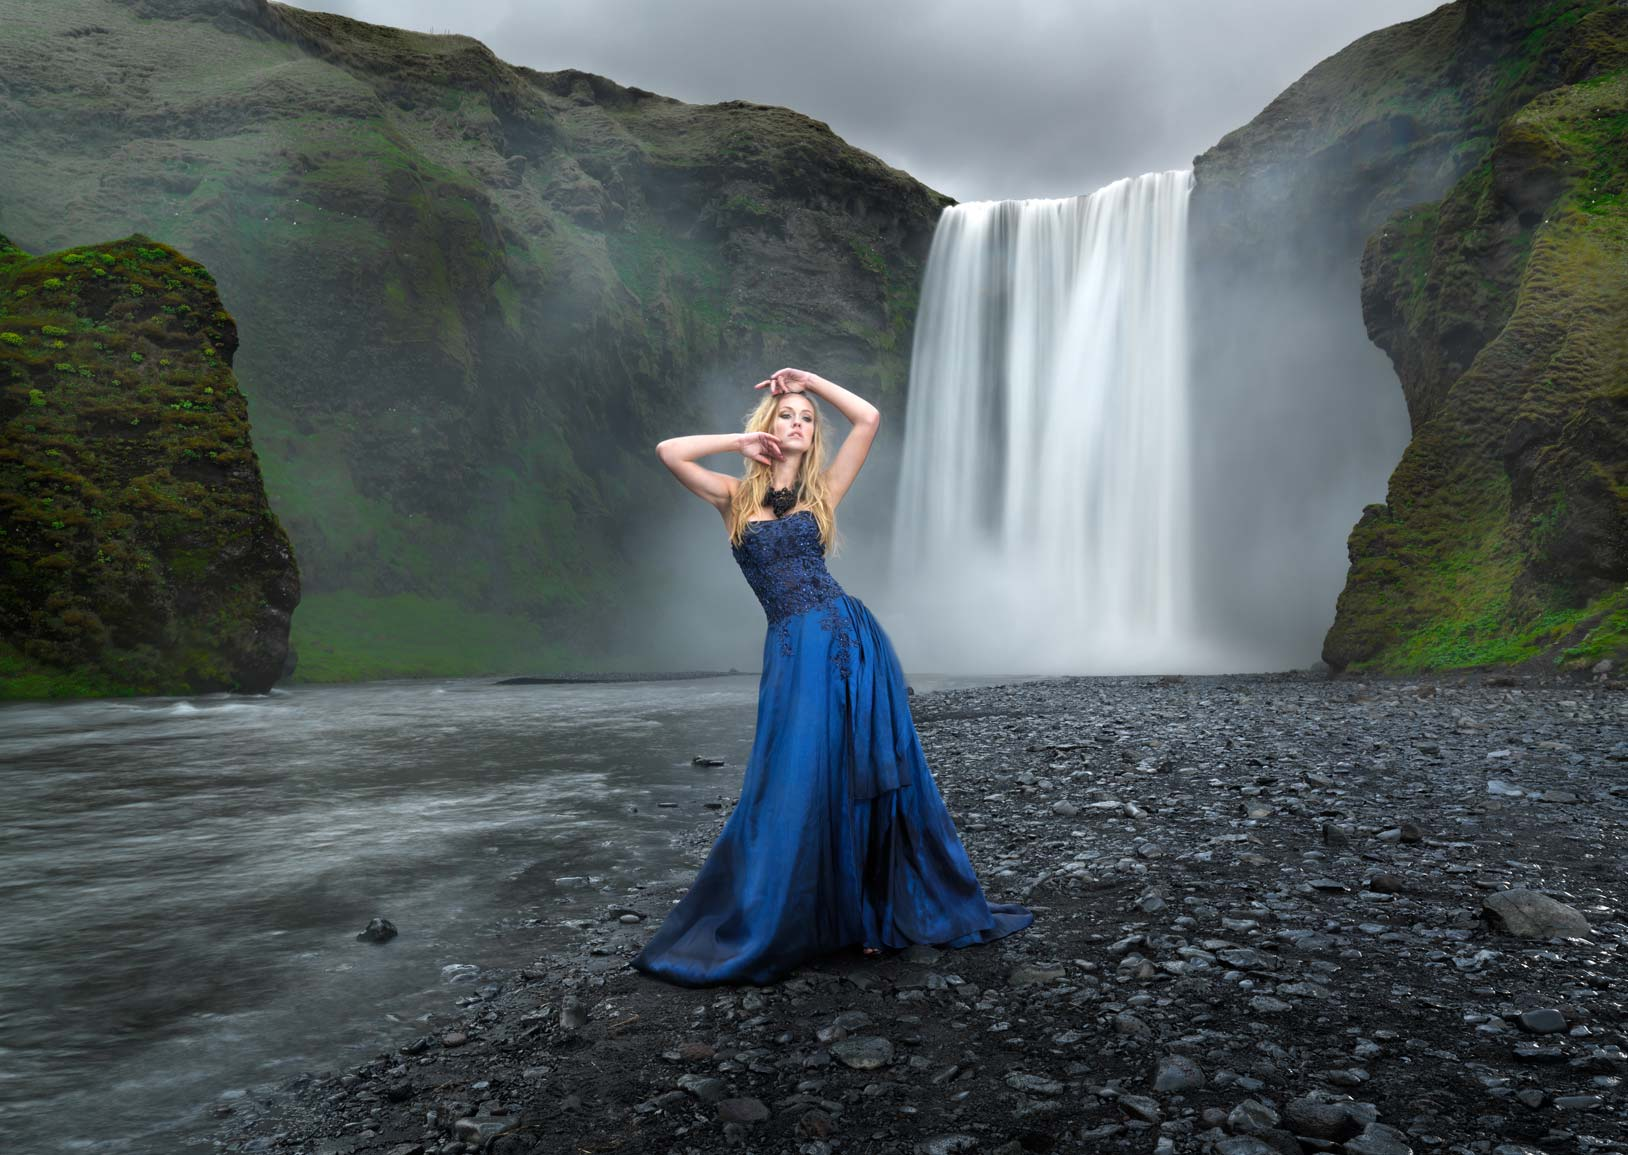 Model infront of waterfall with long exposure